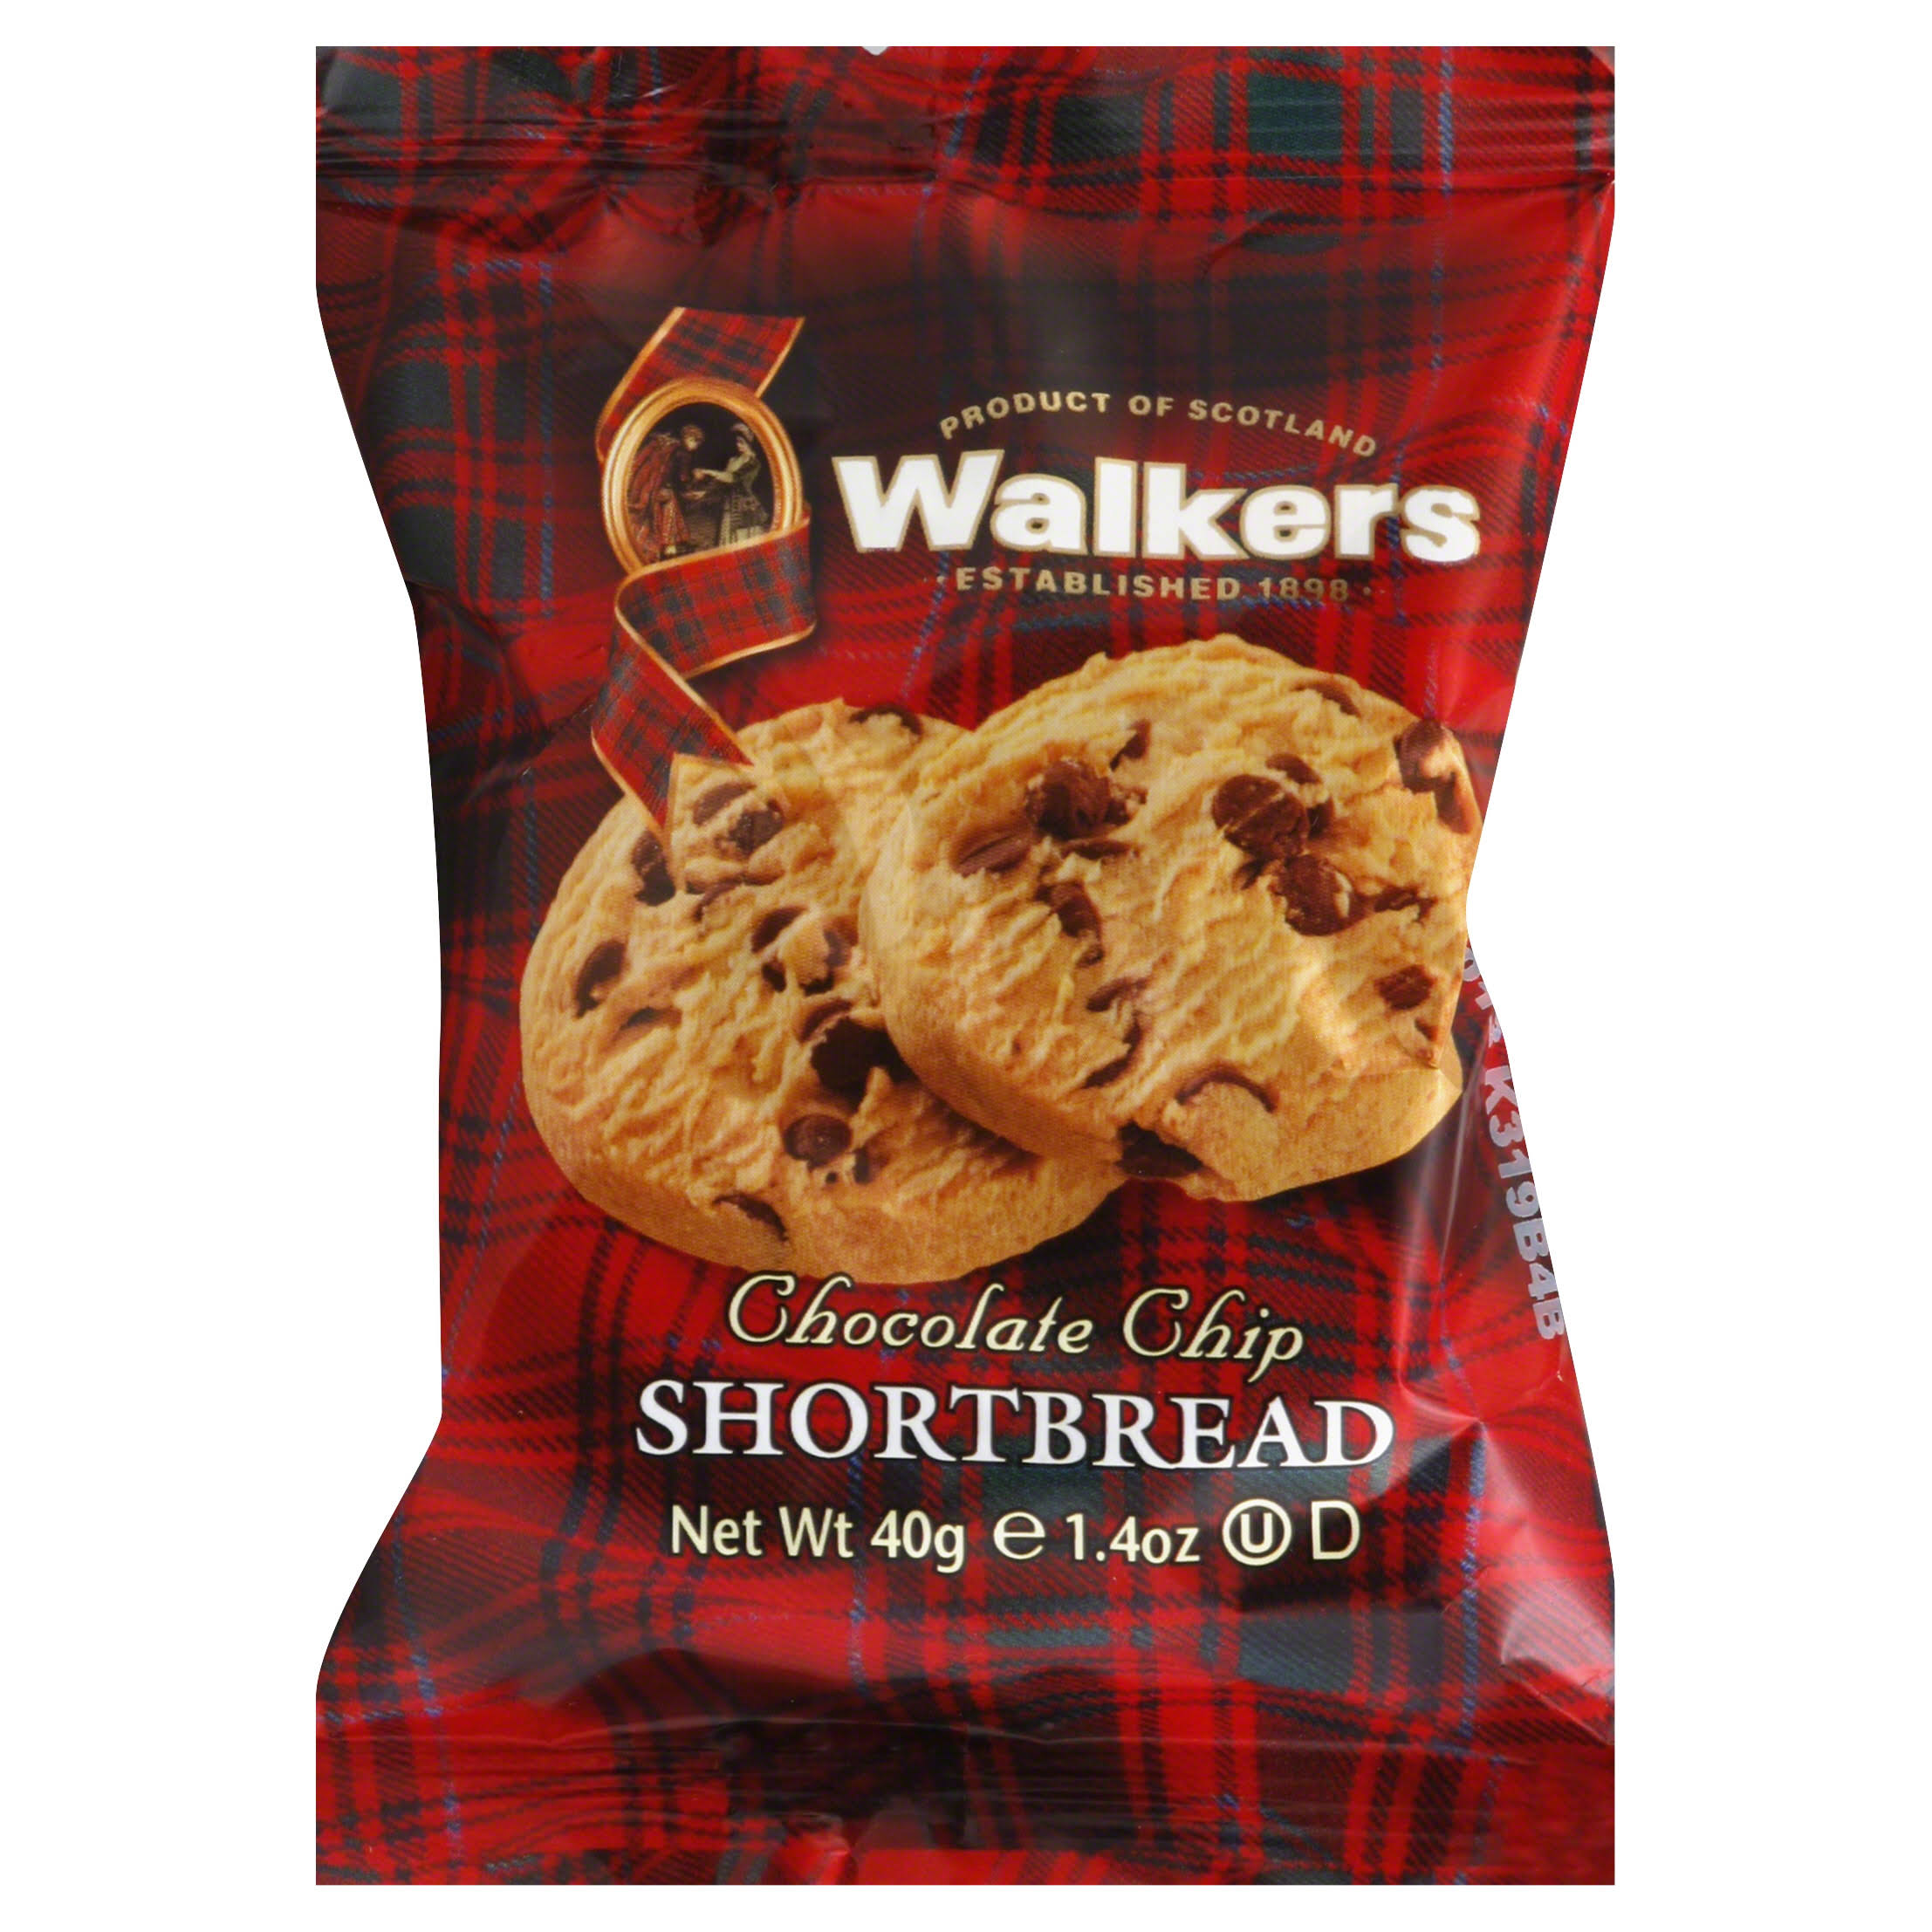 Walkers Shortbread, Chocolate Chip - 1.4 oz